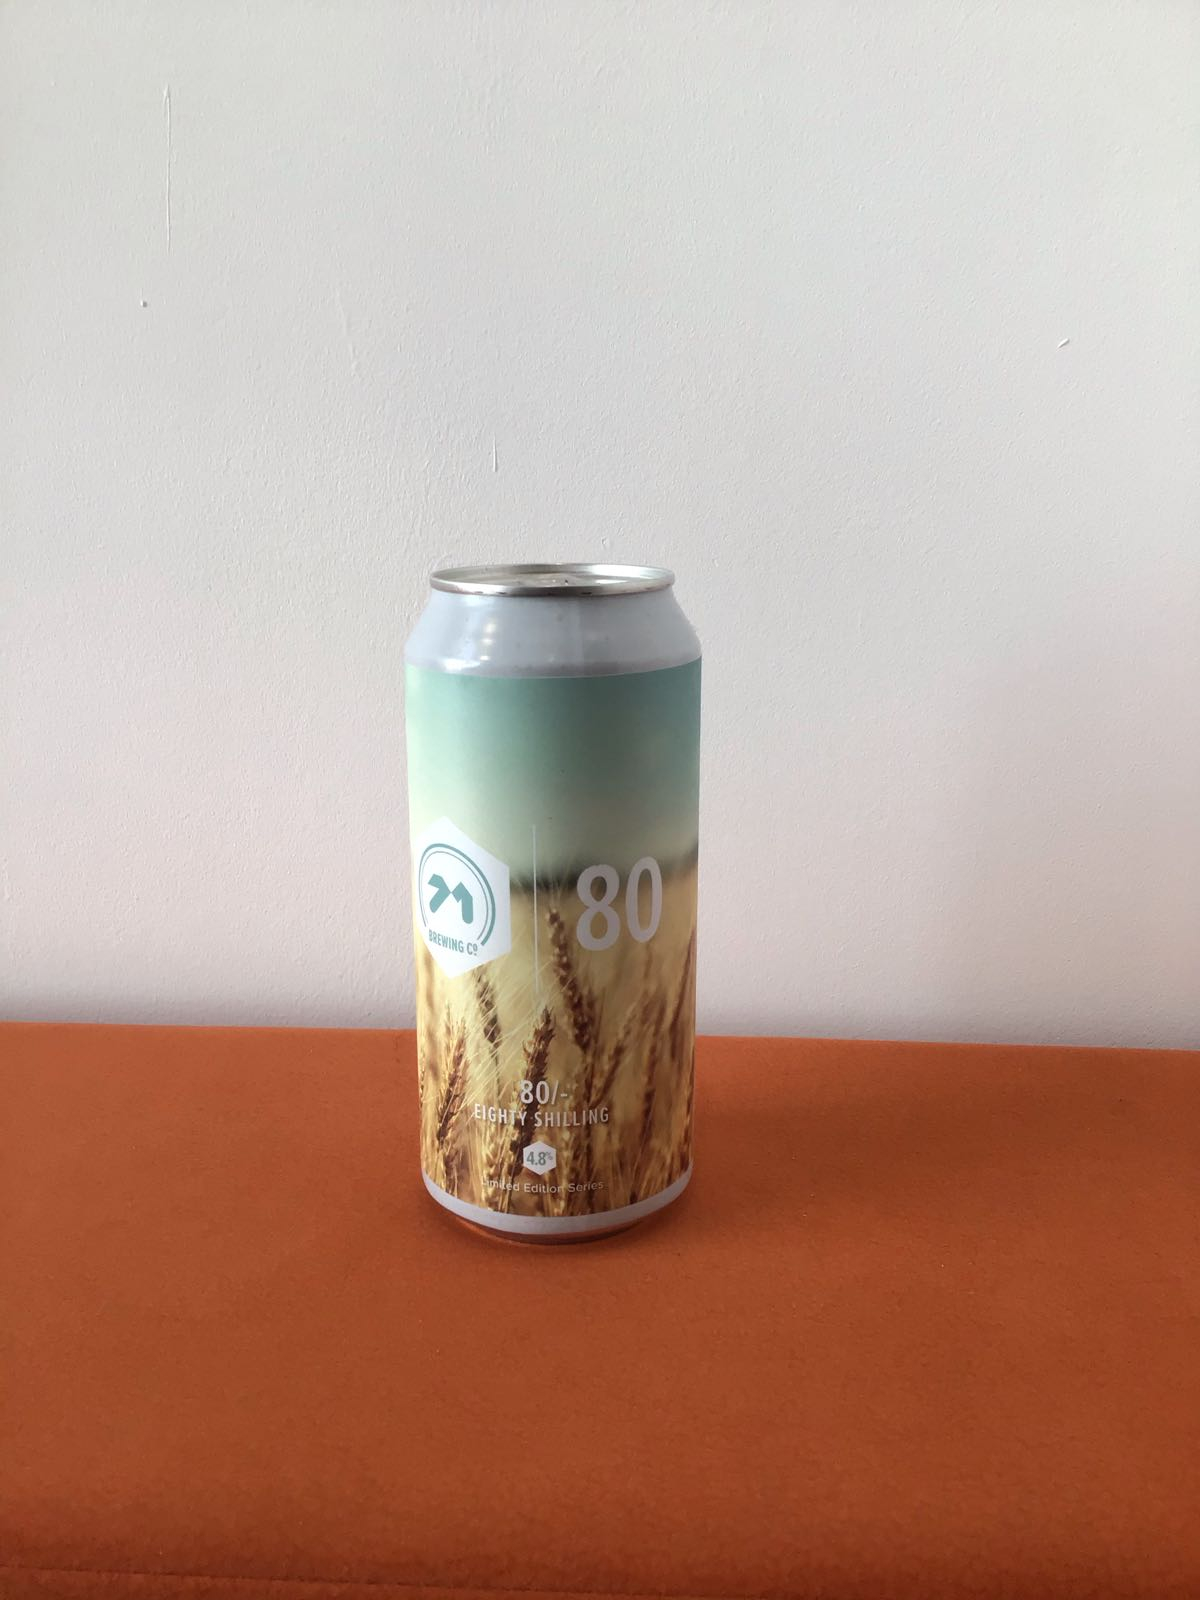 71 Brewing: 80 shilling